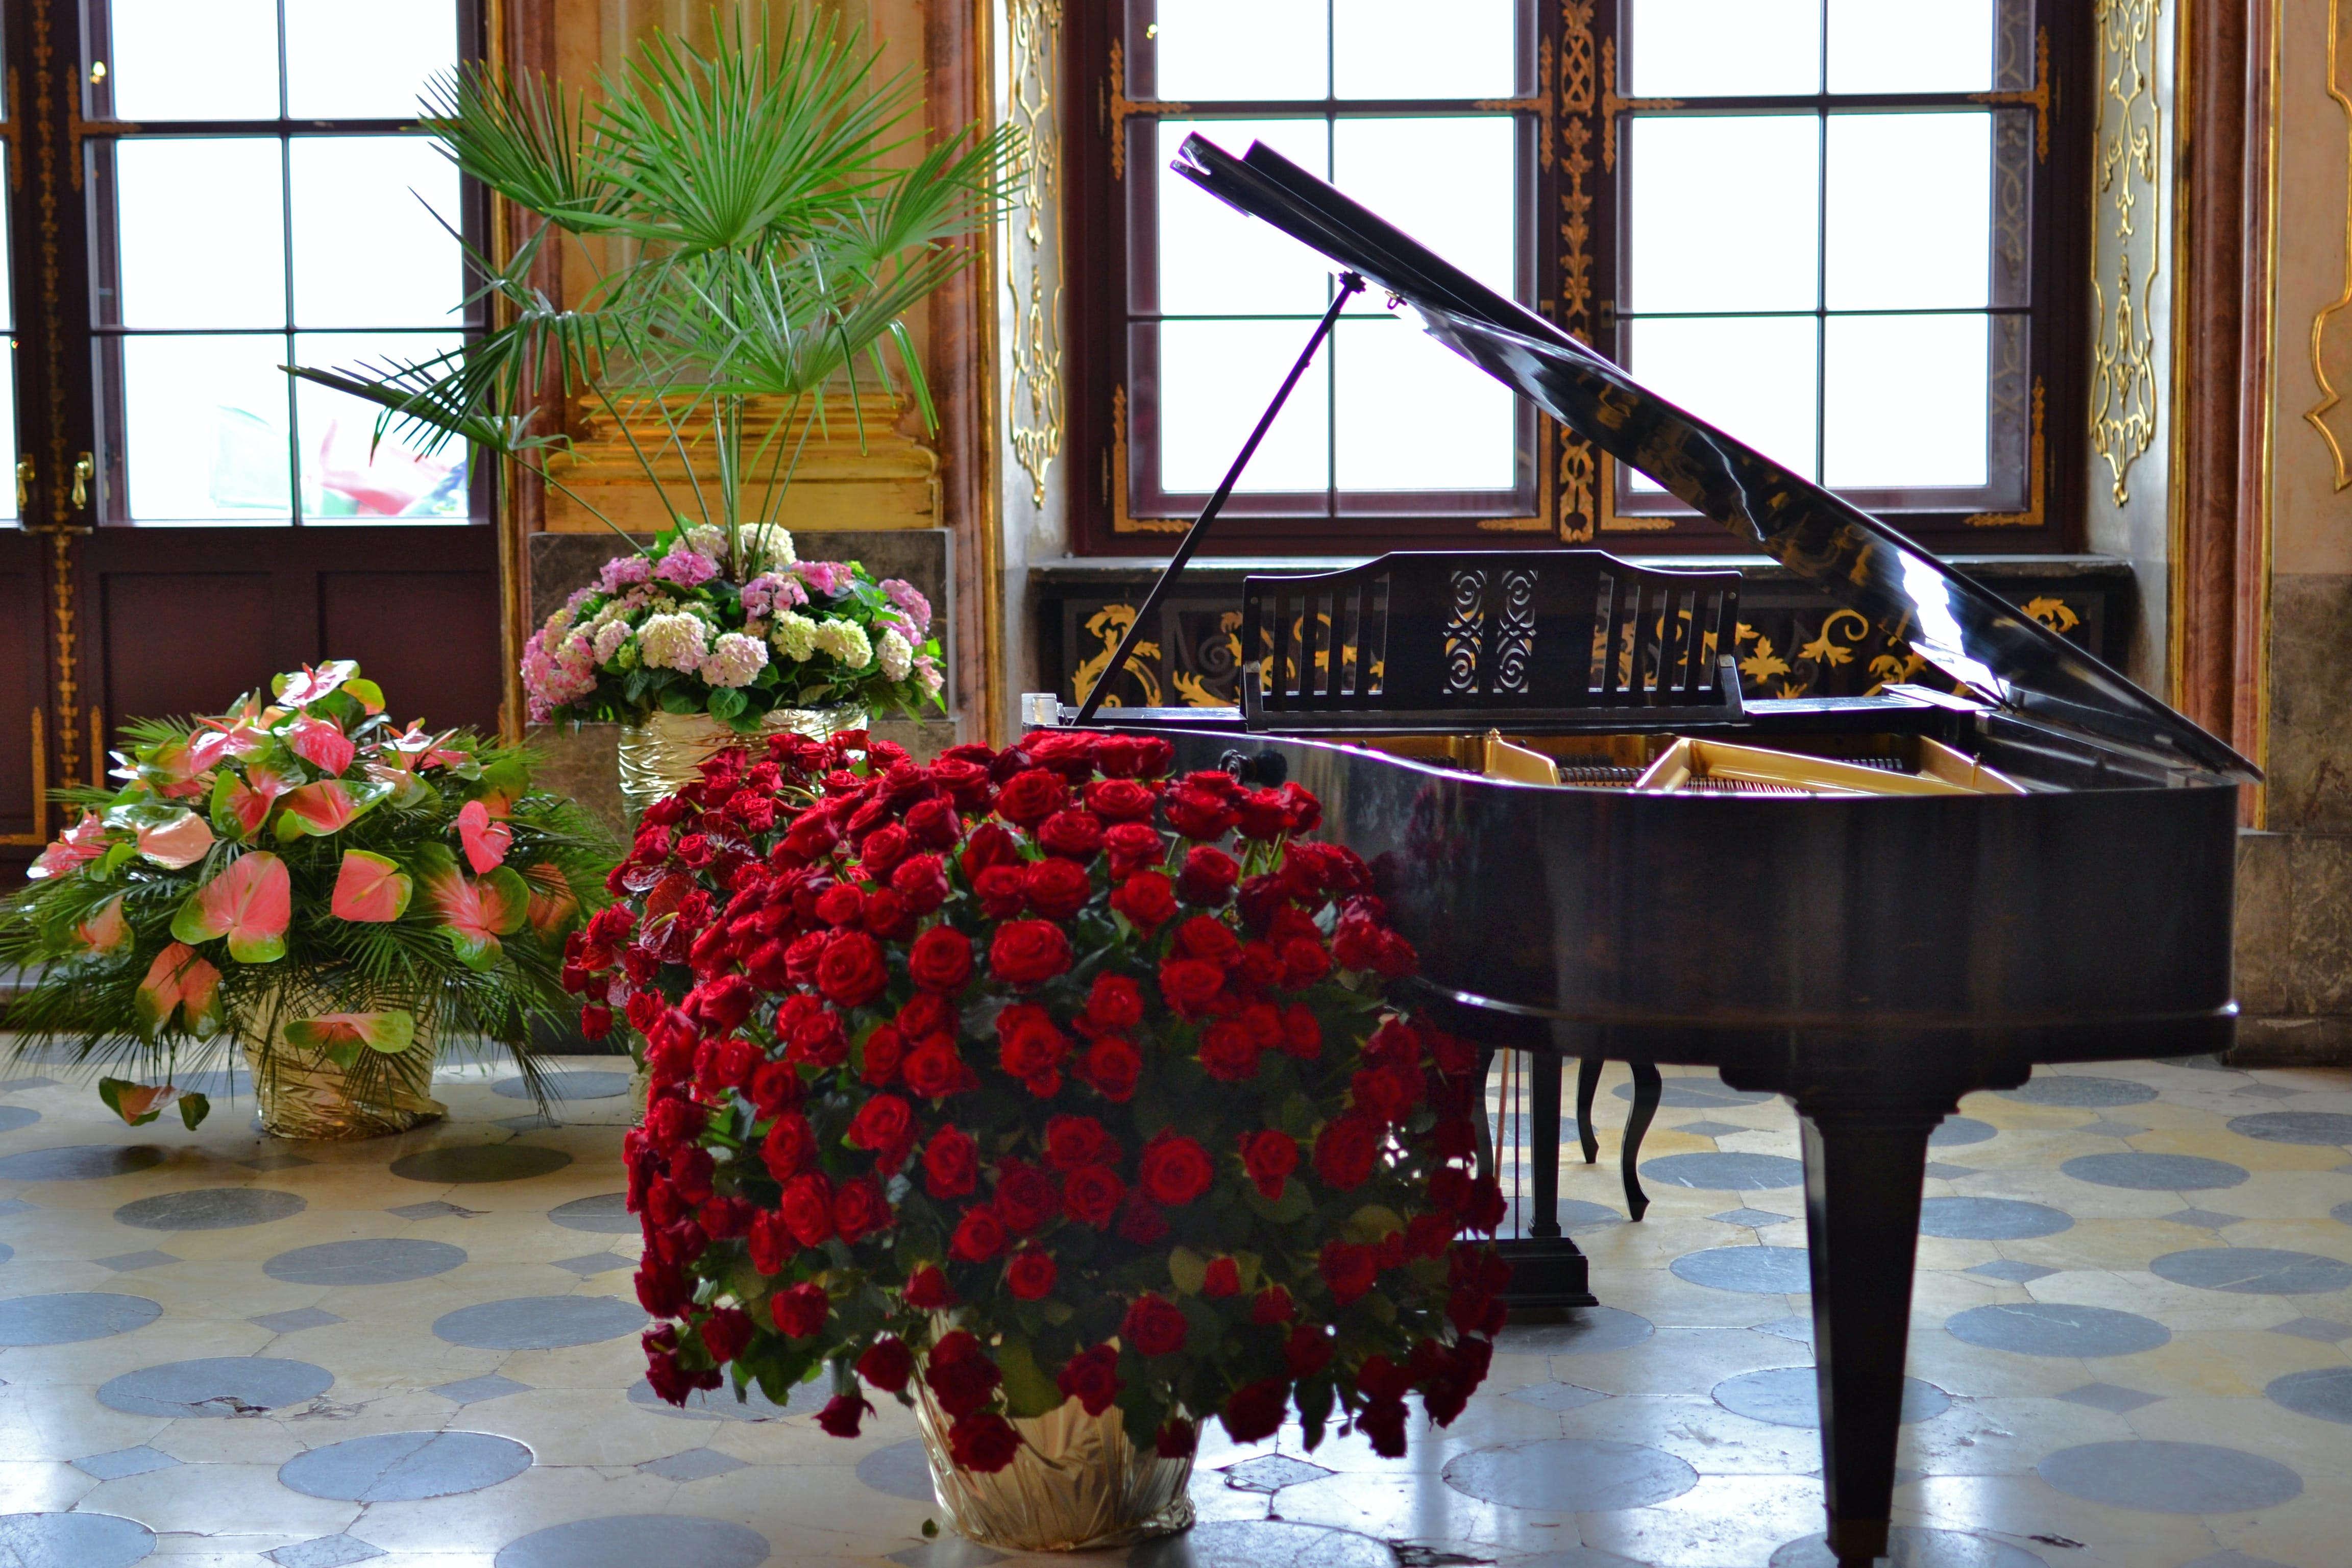 Brown Grand Piano Beside Red Flowers